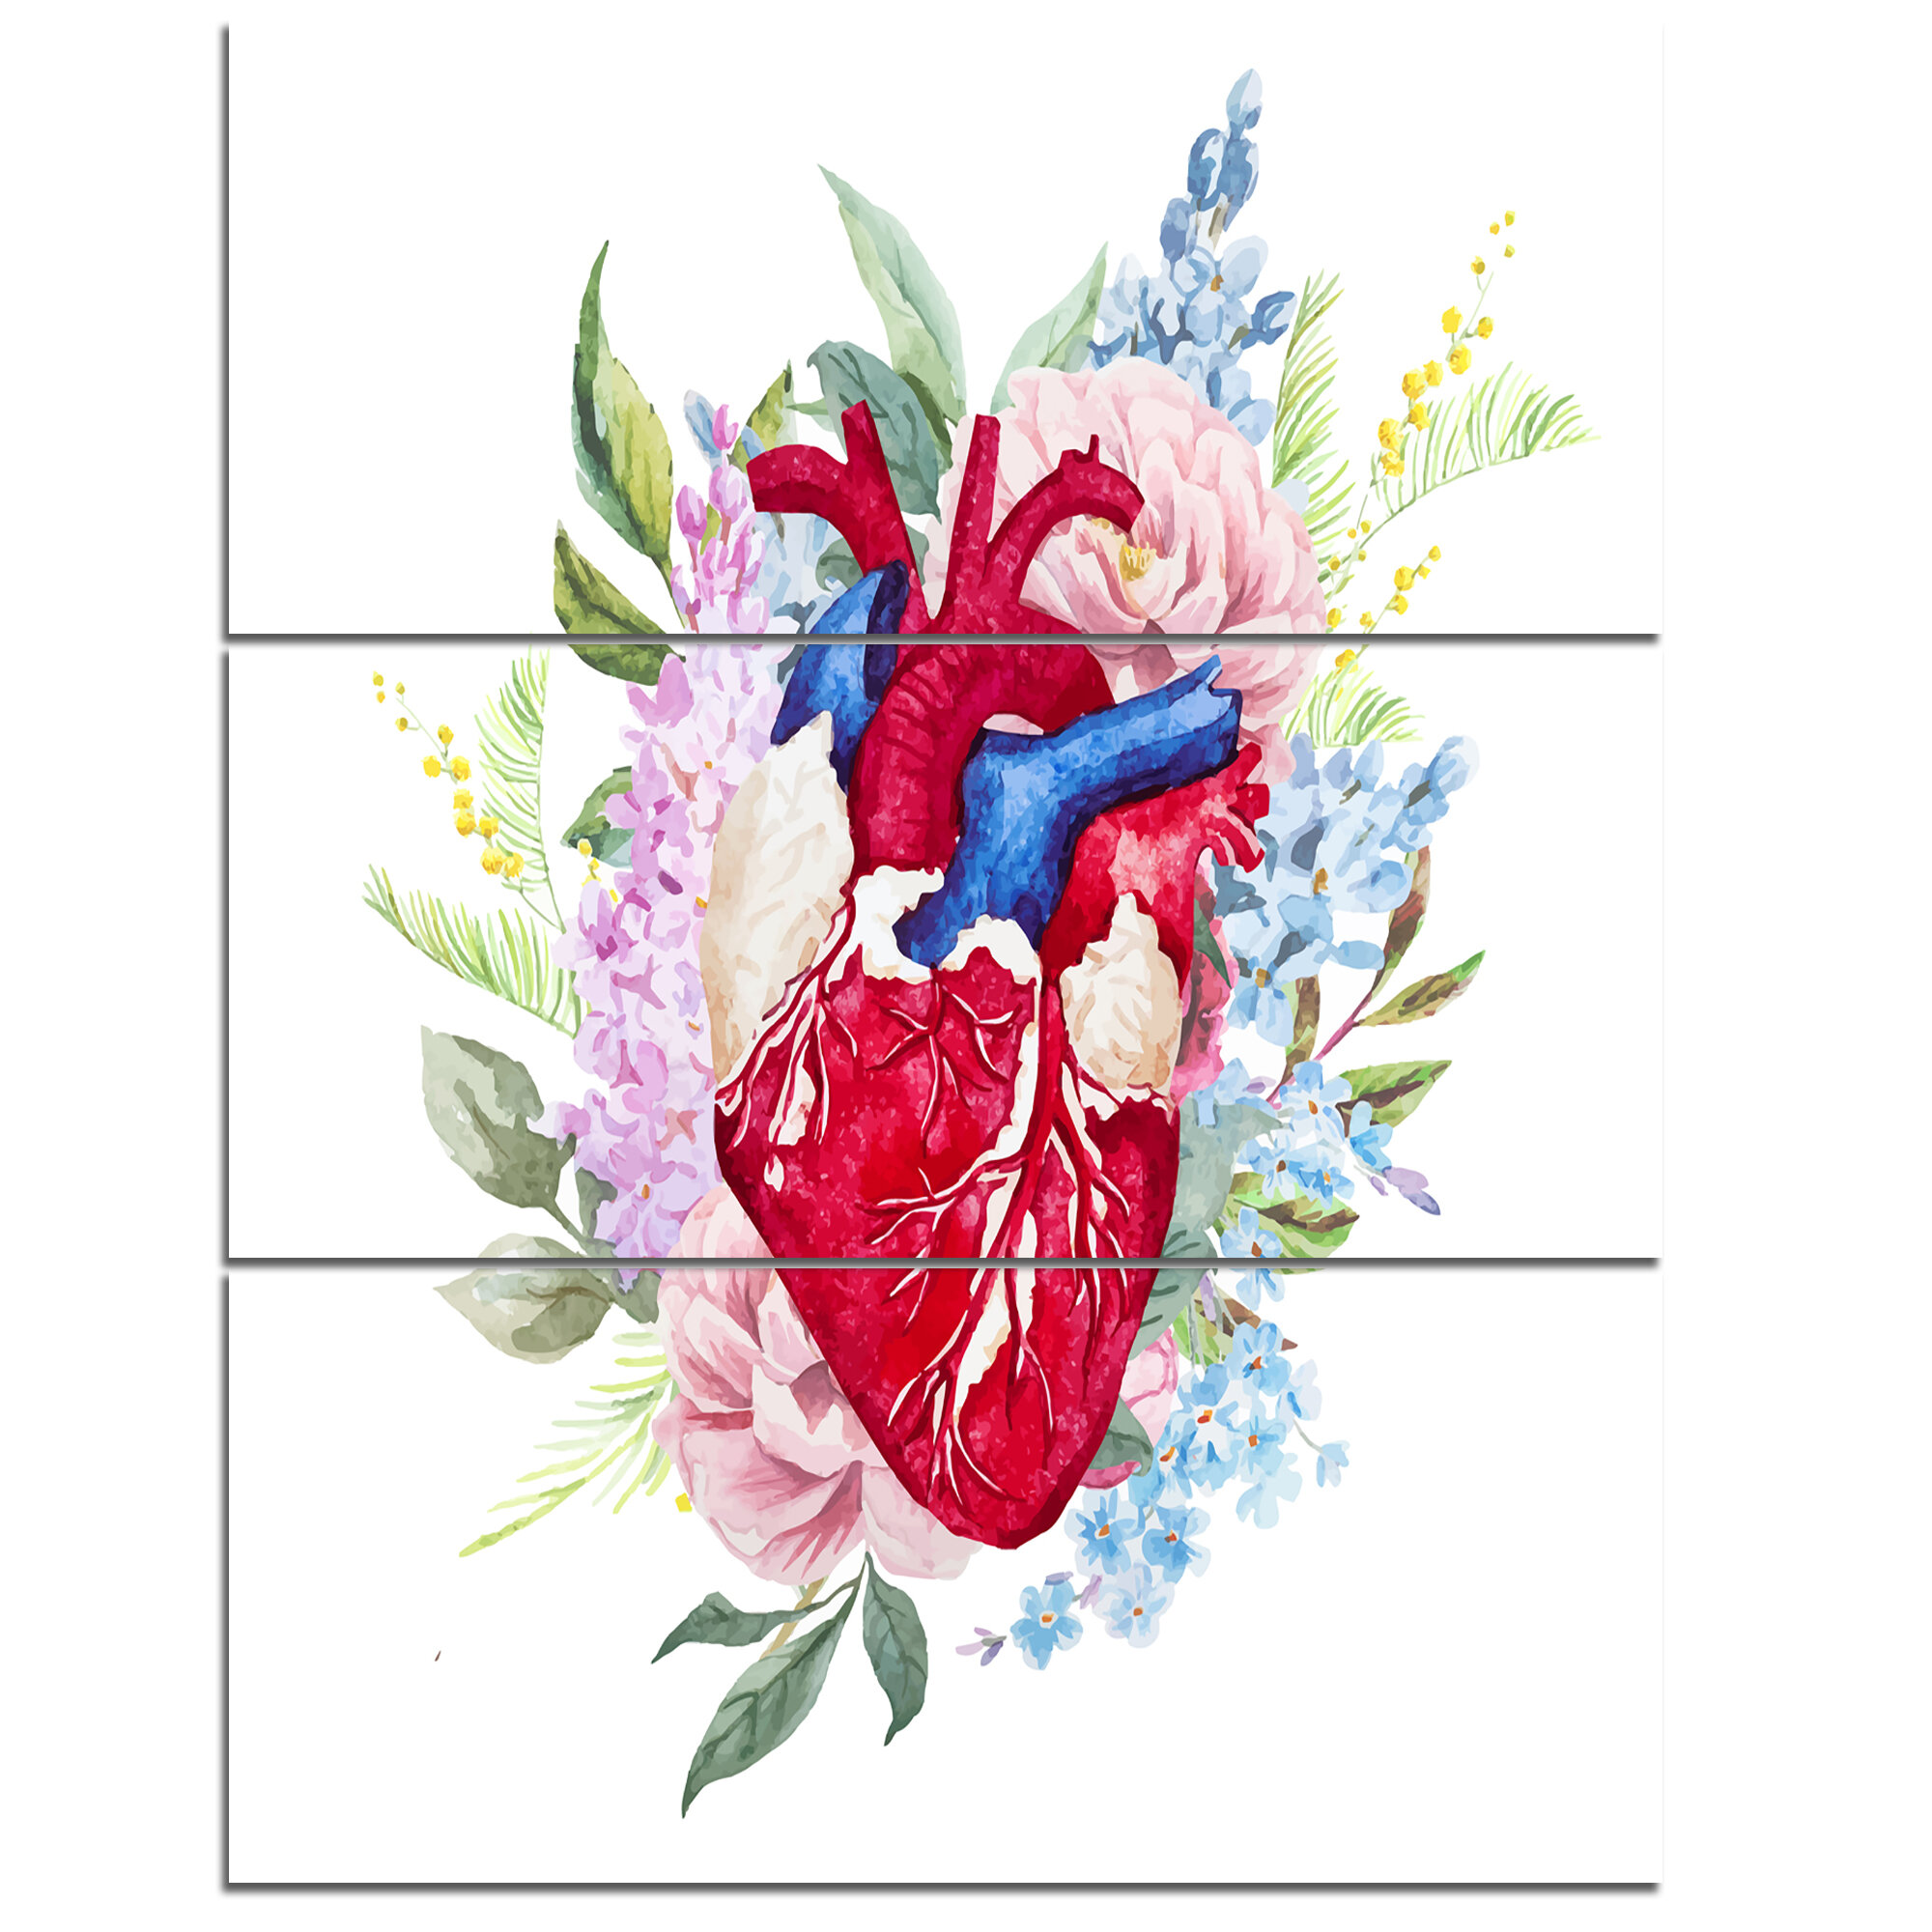 Designart Watercolor Heart With Flowers 3 Piece Wall Art On Wrapped Canvas Set Wayfair